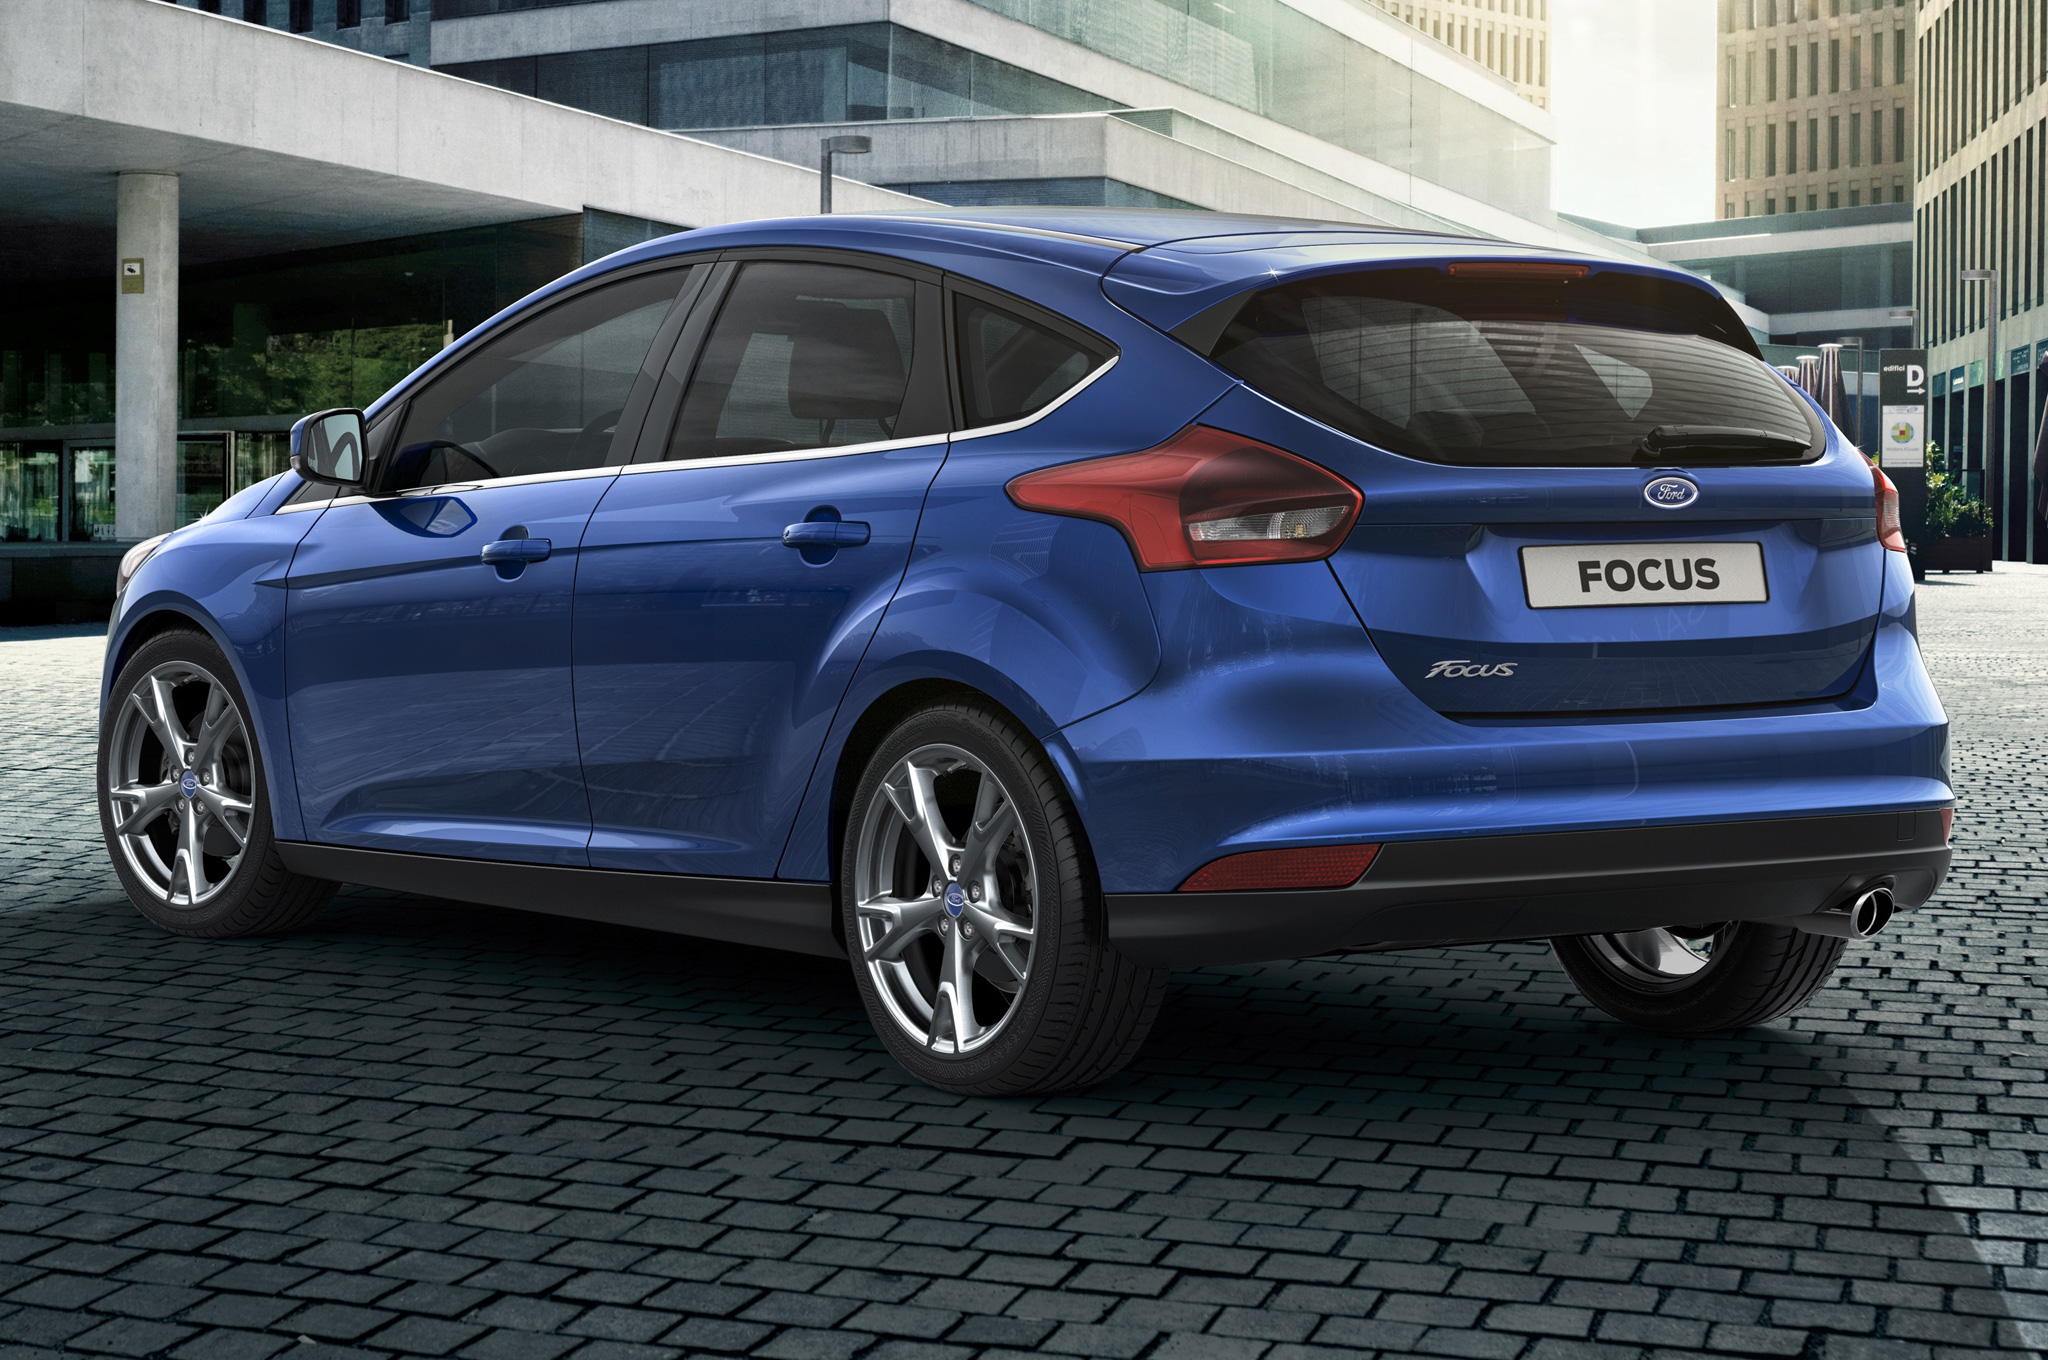 ford focus hatchback iii 2015 wallpaper